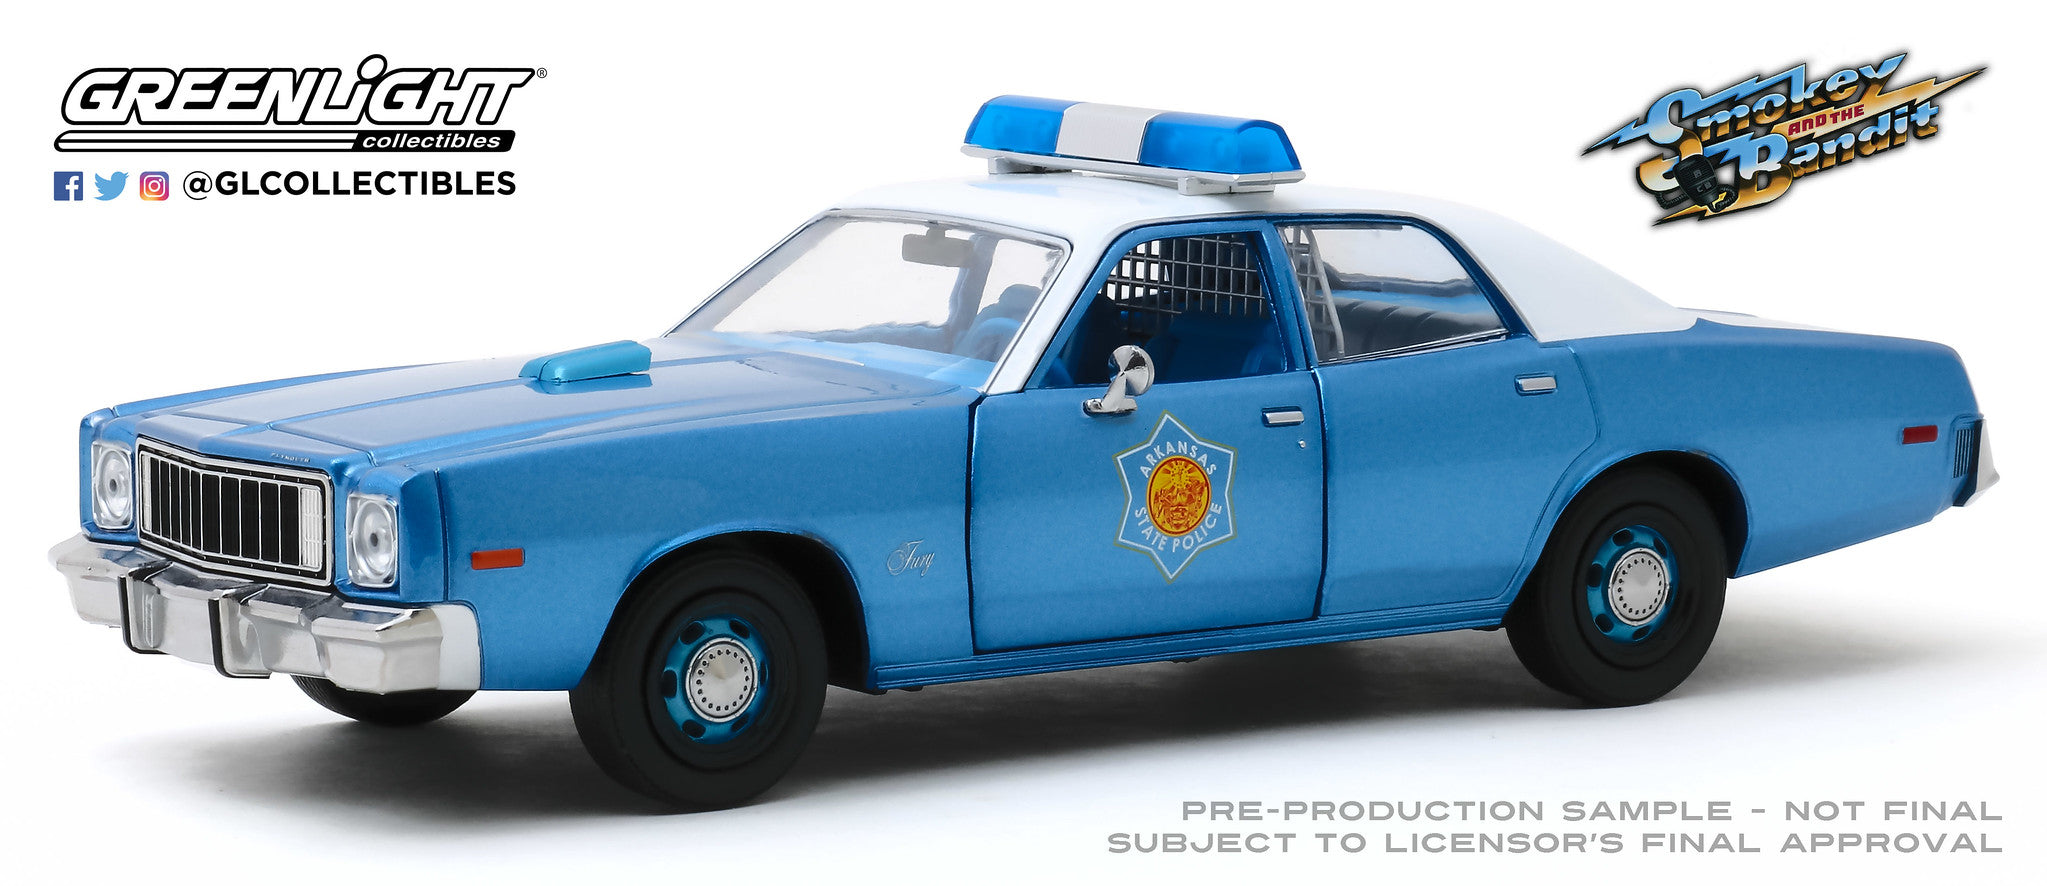 GreenLight 1:24 Smokey and the Bandit (1977) - 1975 Plymouth Fury Arkansas State Police 84102